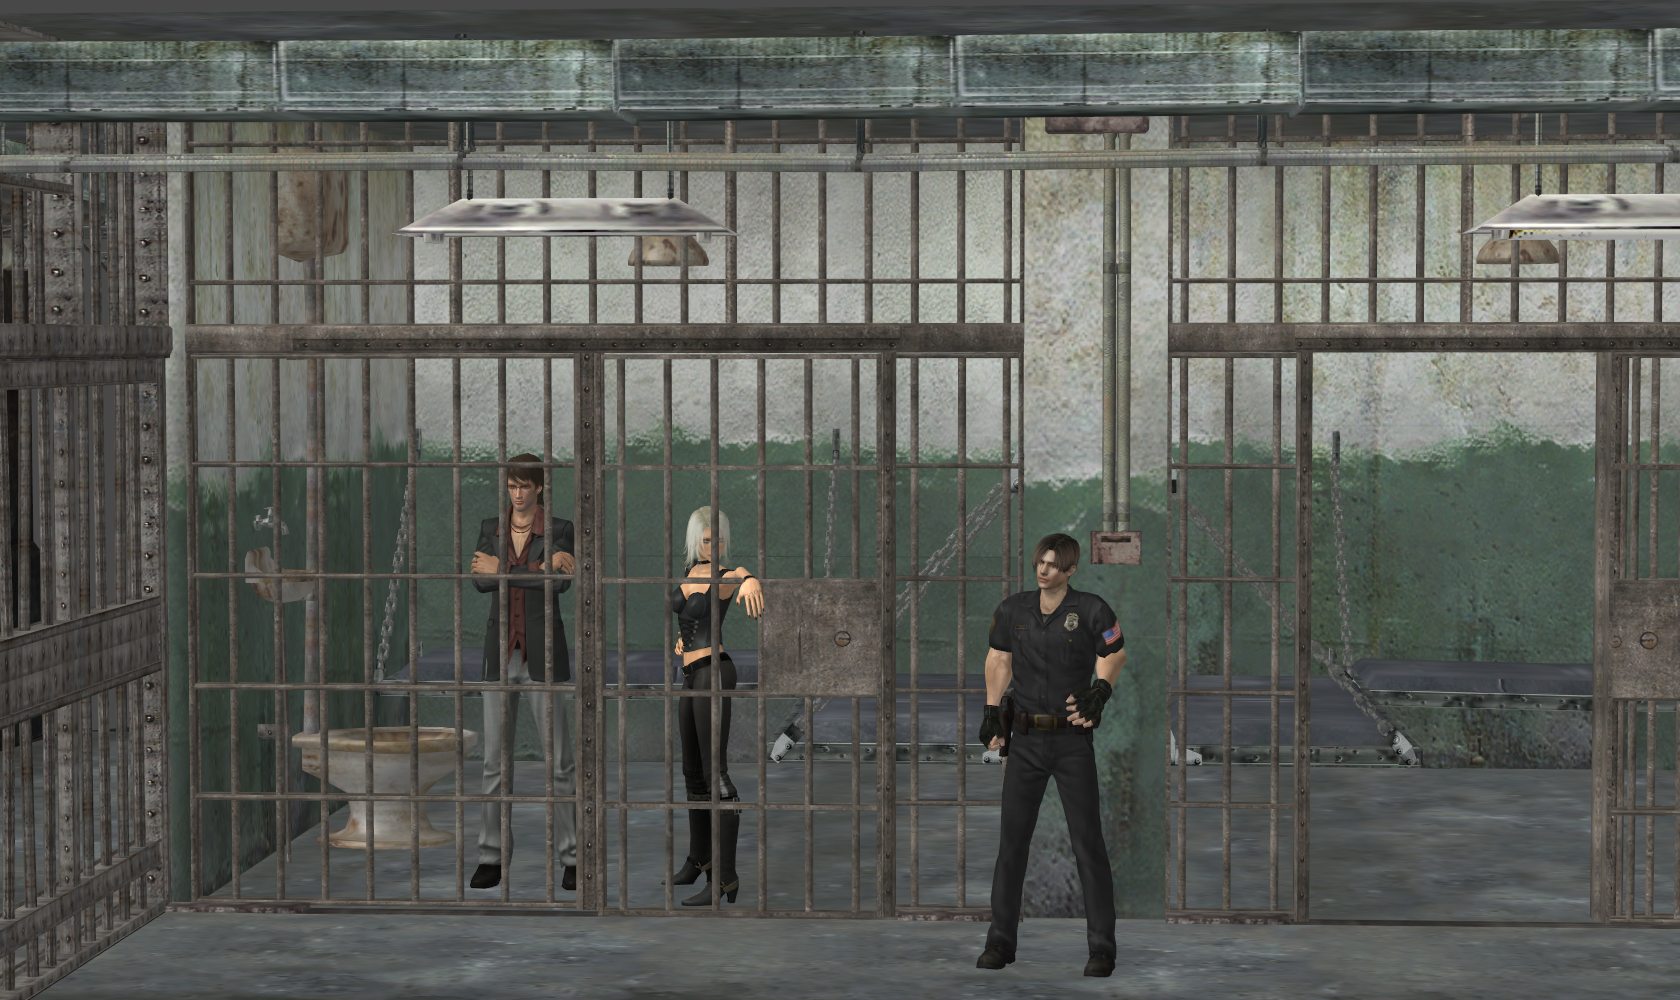 Make A Sliding Door In Gmod: Jail (Re-Updated XPS) By Bstylez On